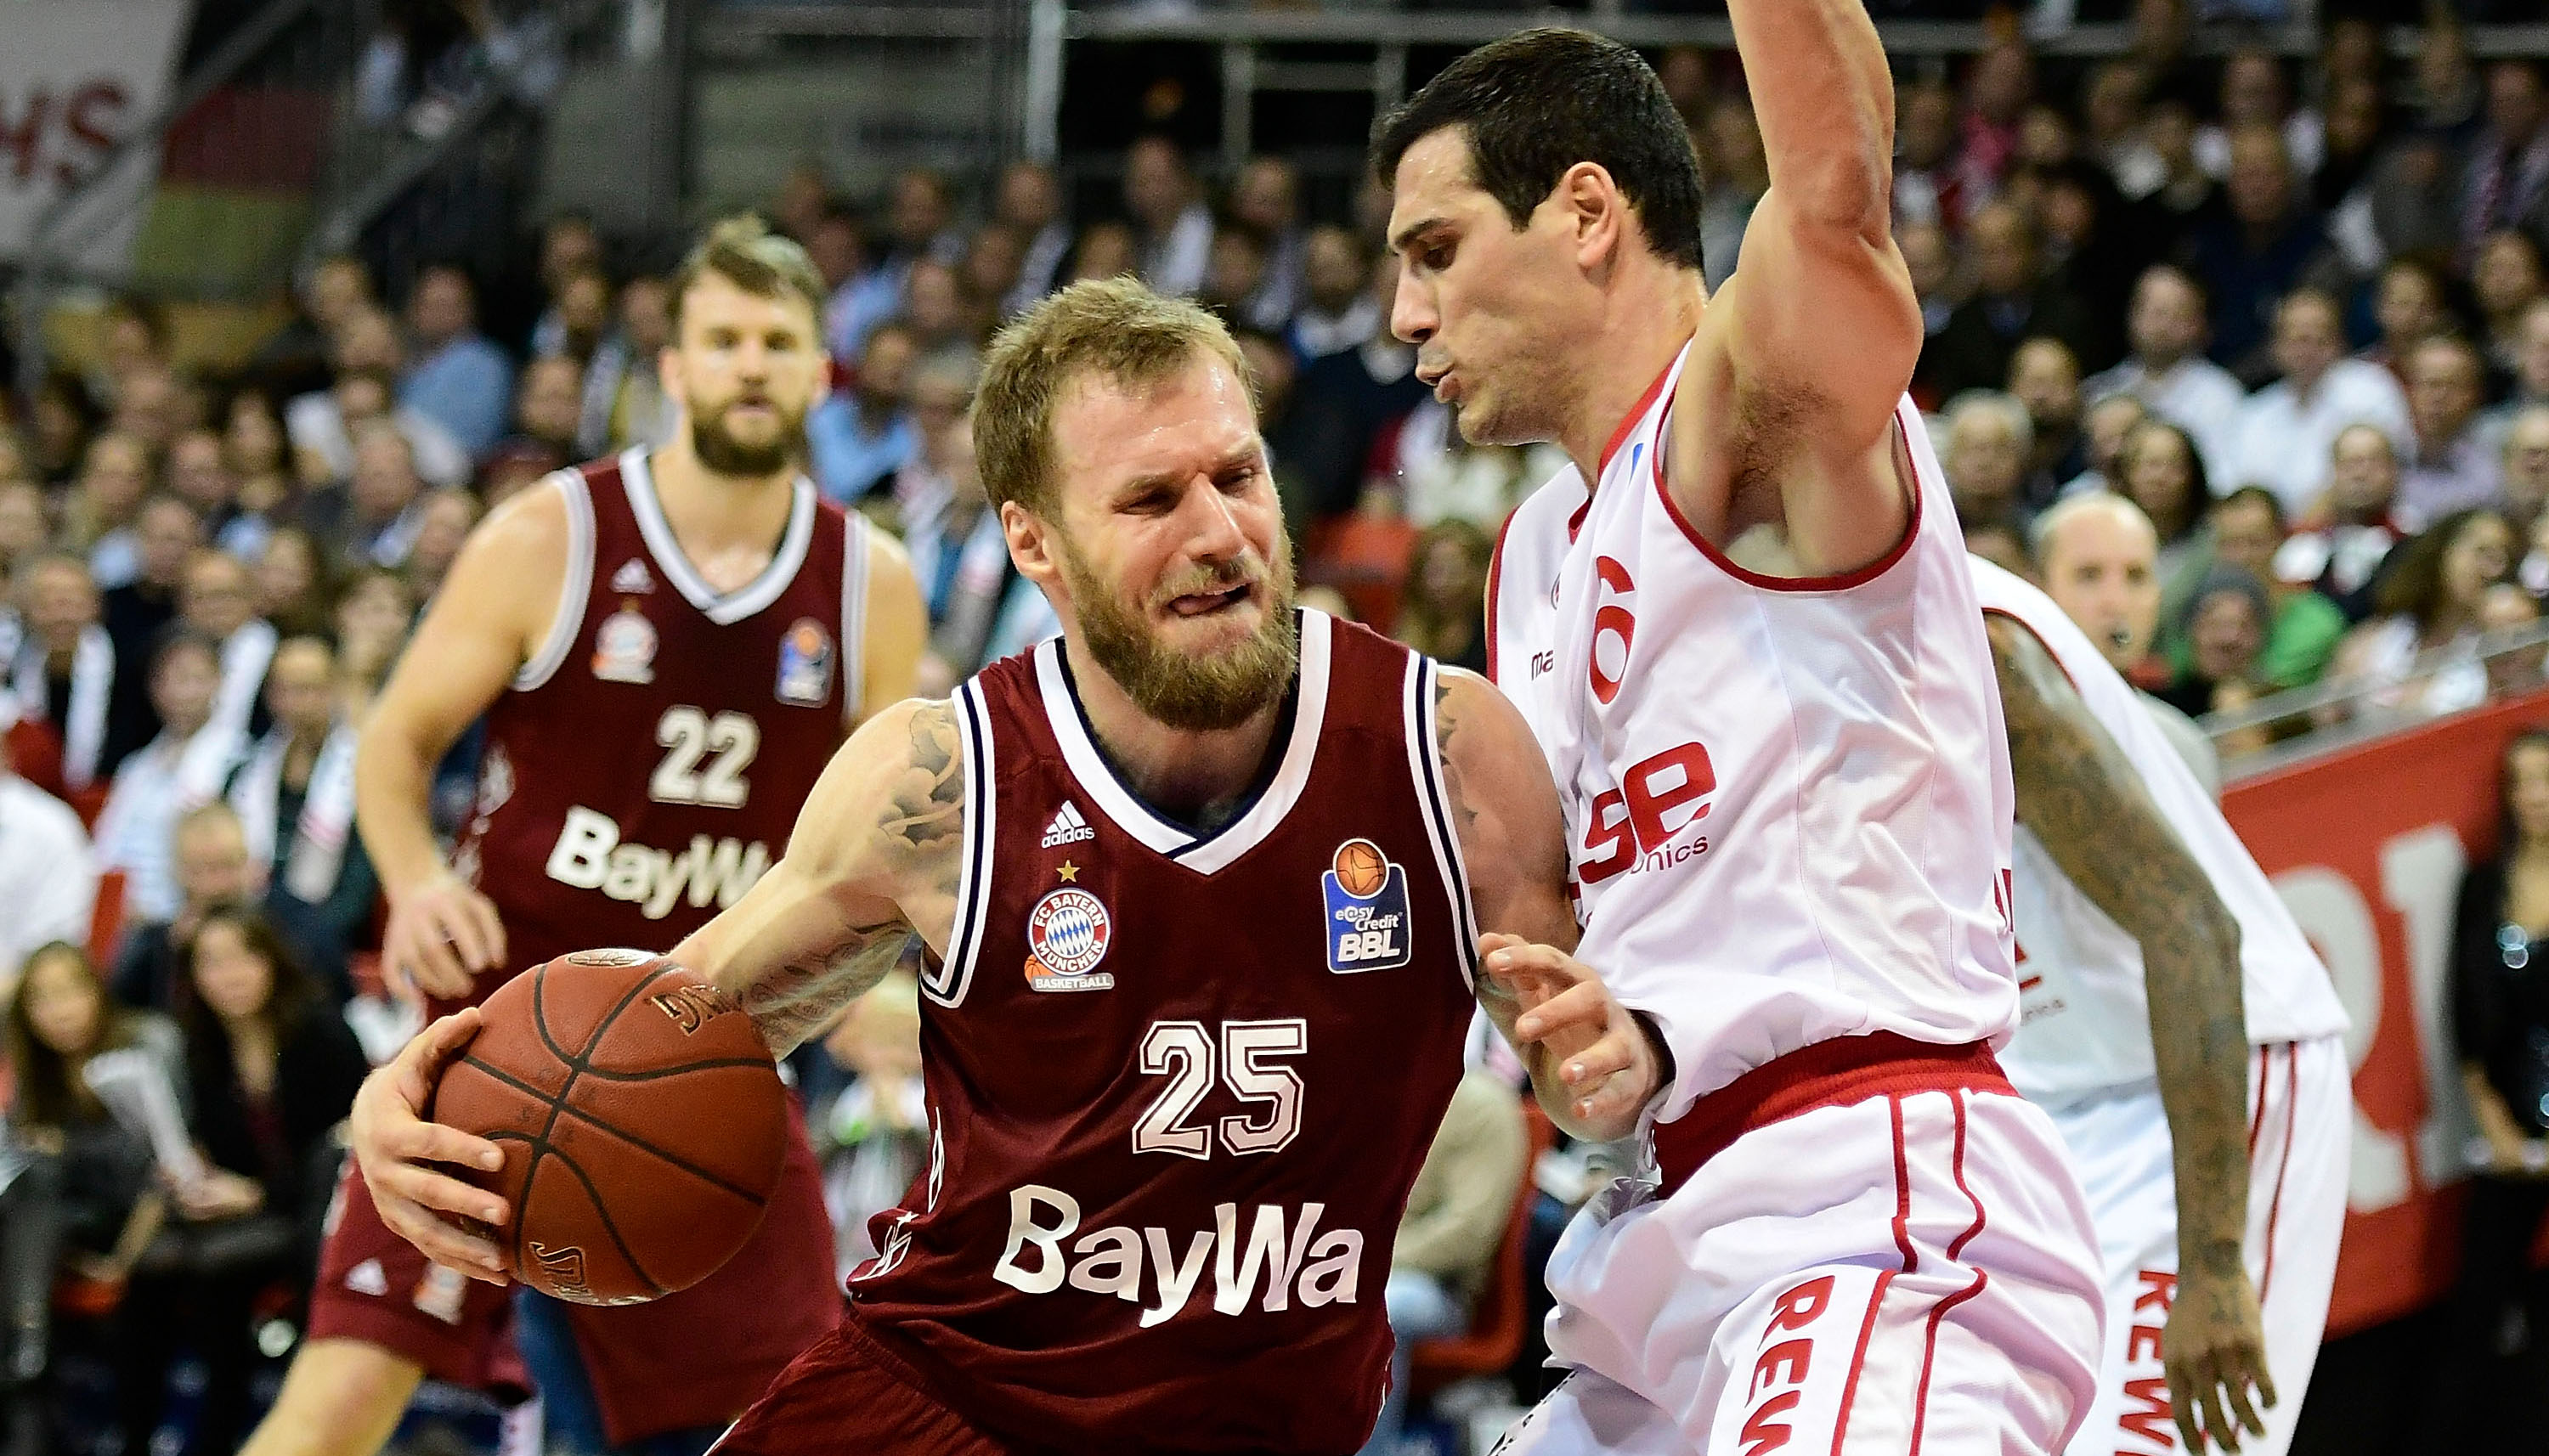 BBL Playoffs: Keine Favoriten in Halbfinale